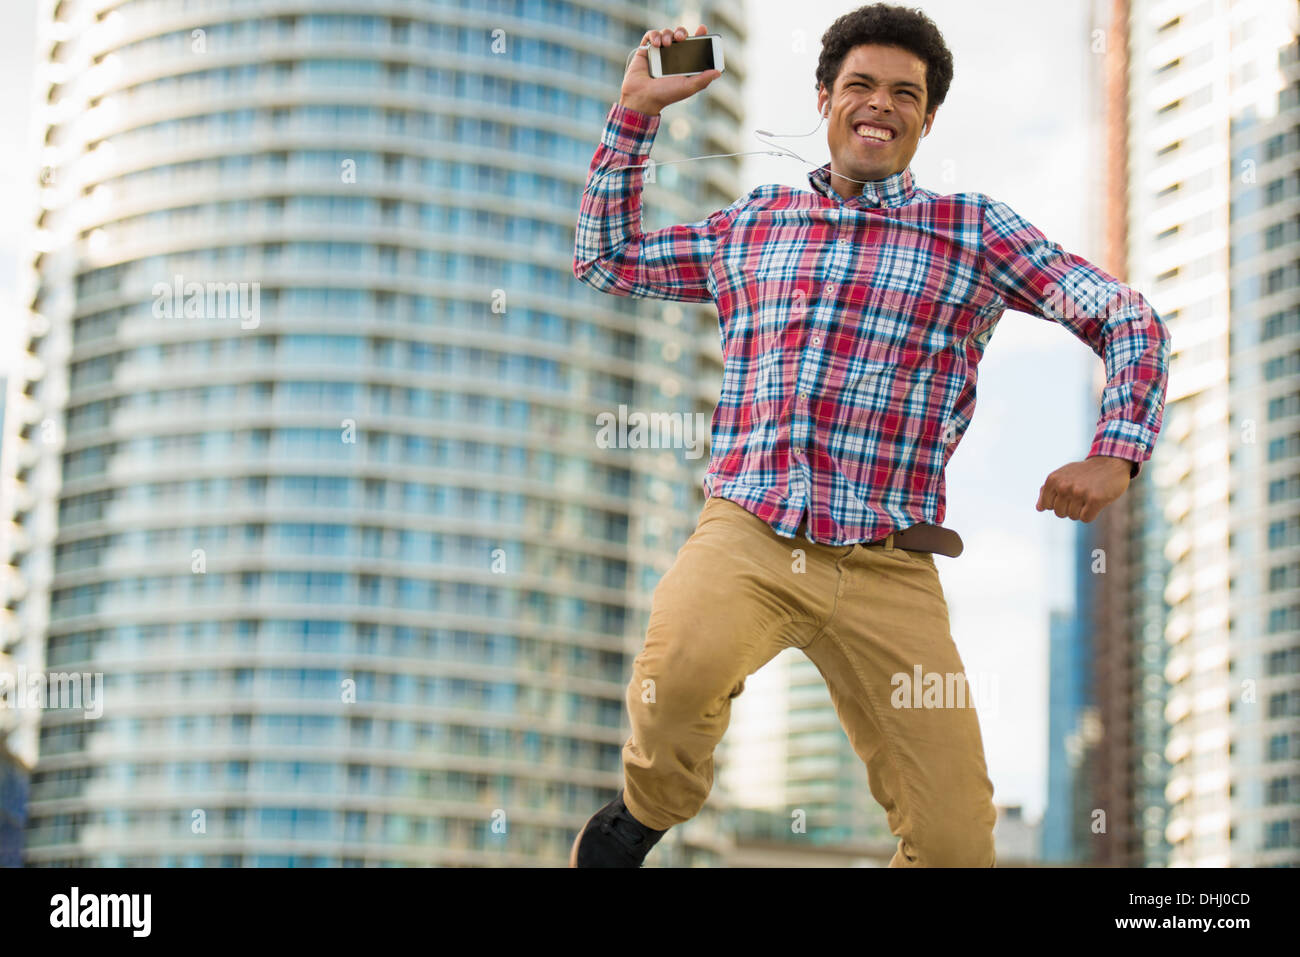 Man with mobile phone jumping for joy Photo Stock